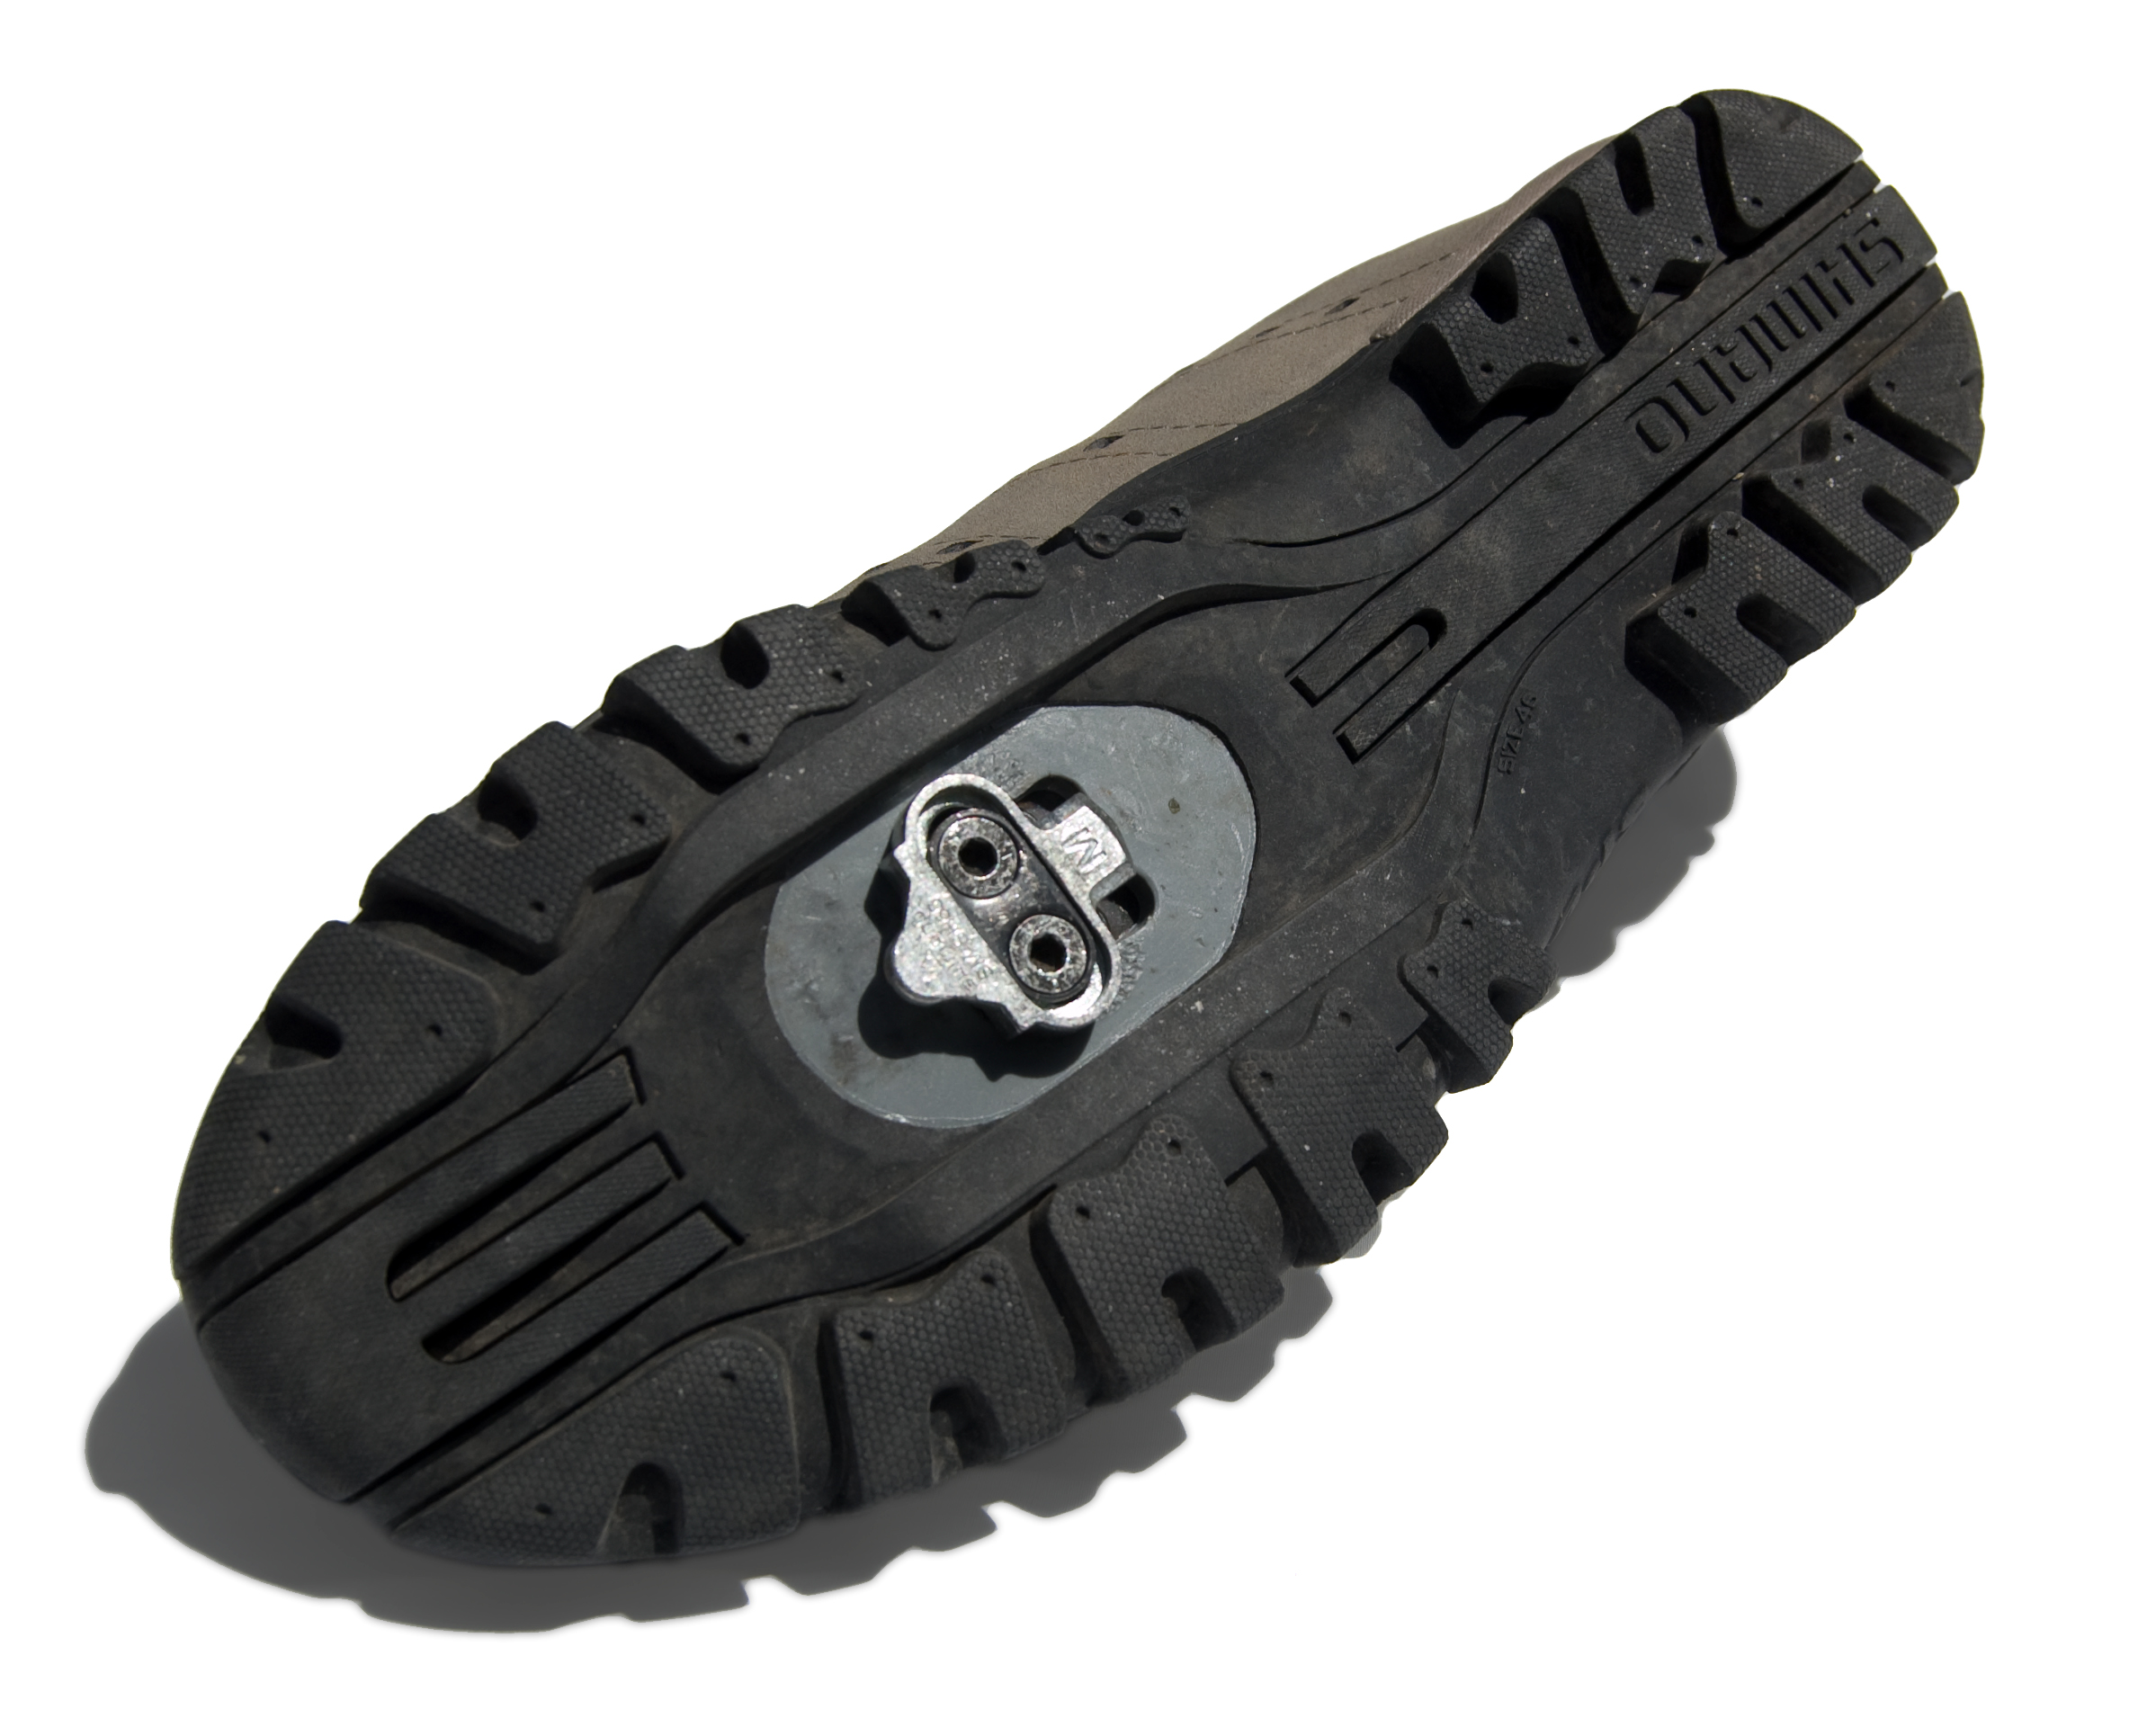 http://upload.wikimedia.org/wikipedia/commons/9/91/Shimano_MT31_shoe_with_SH56_cleat-Sole.jpg